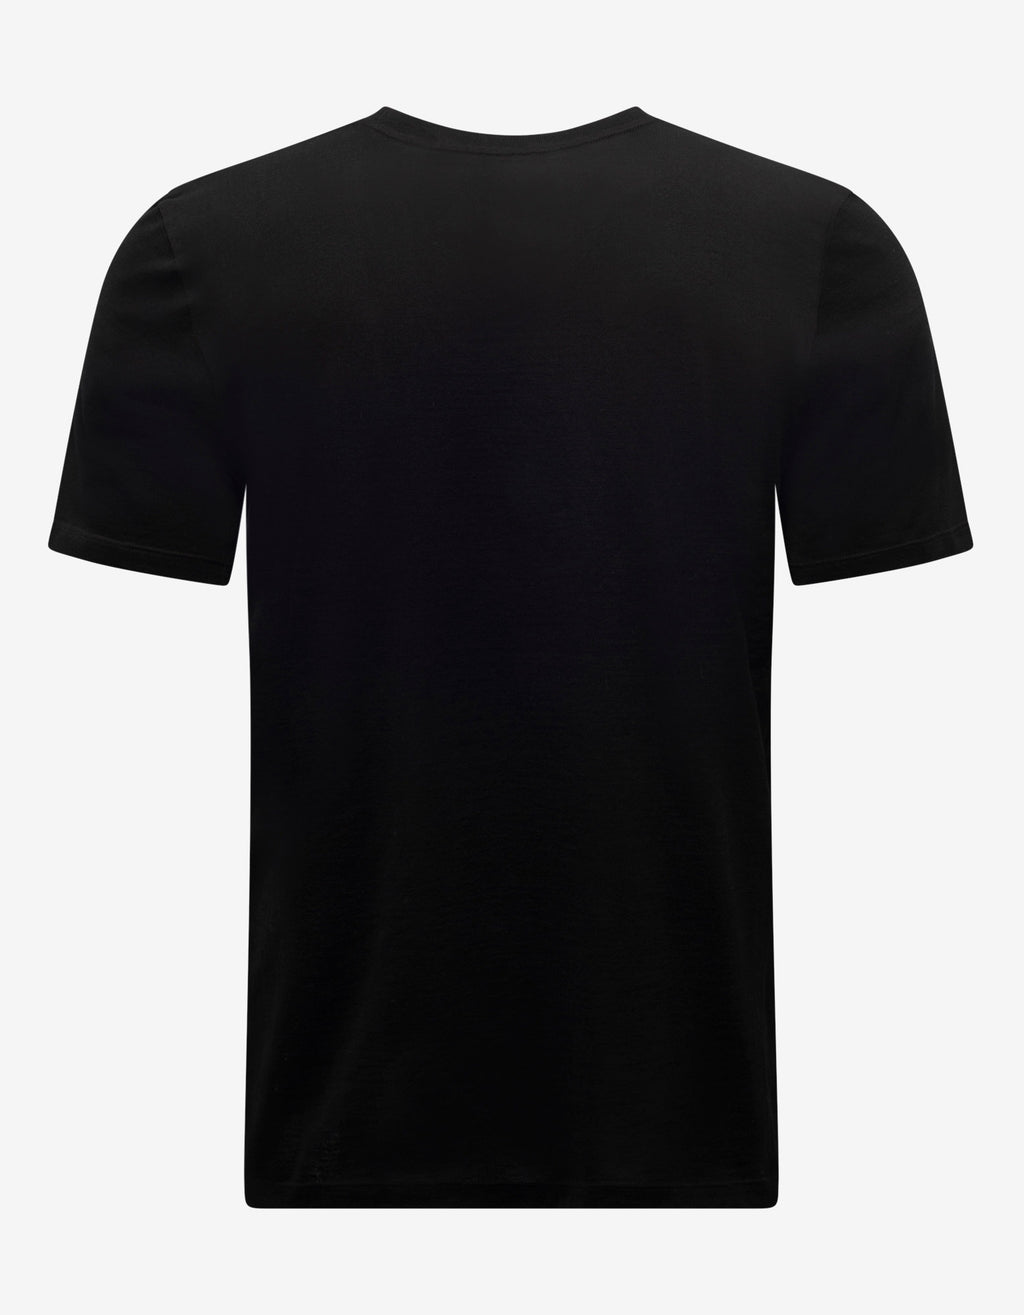 Black Jacquard Saint Laurent T-Shirt